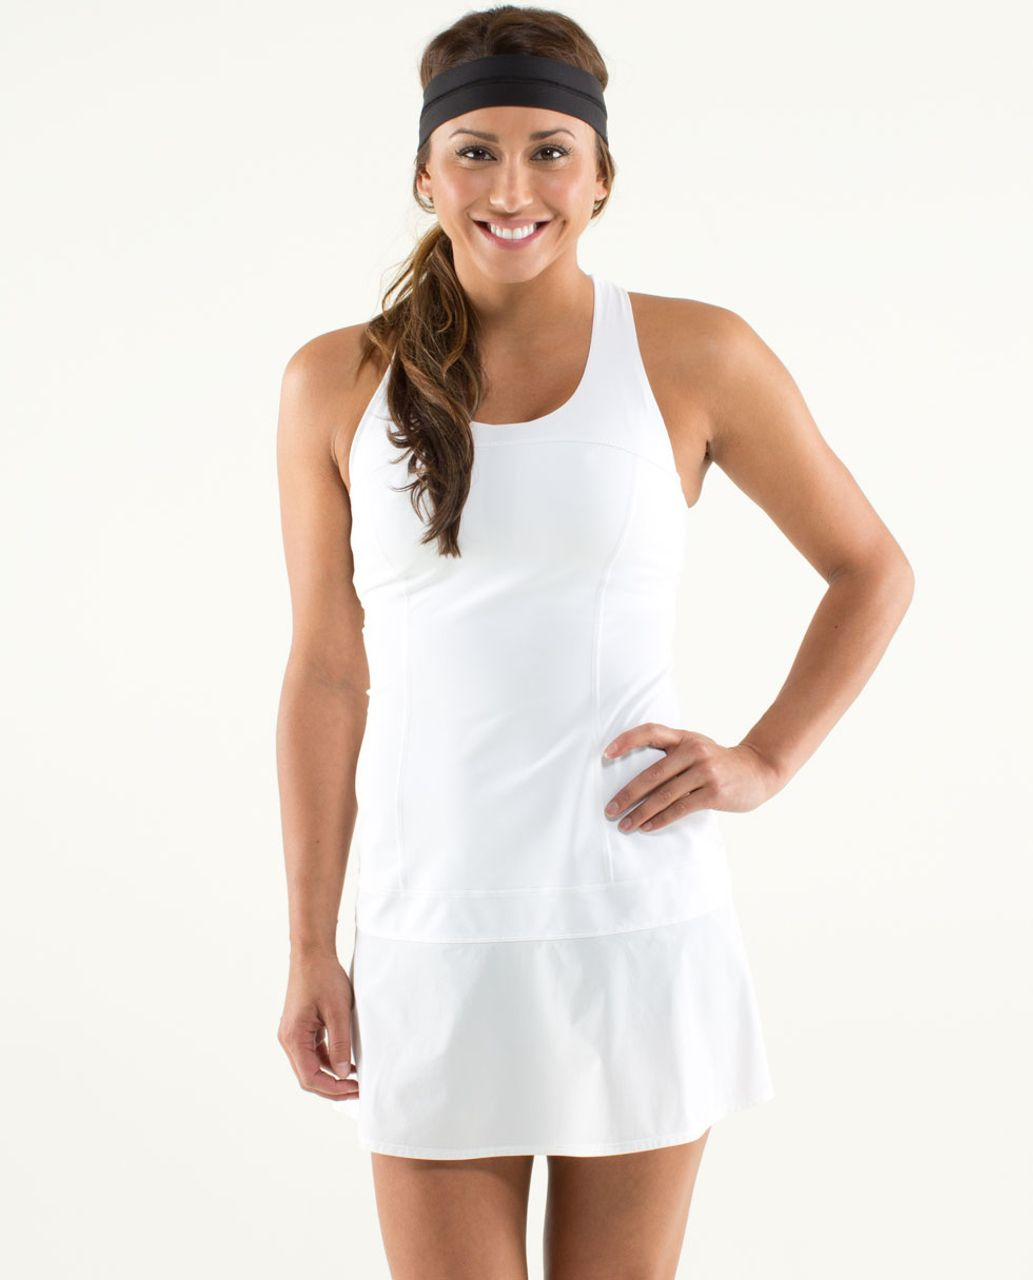 f31efc59e9 Lululemon Hot Hitter Dress - White - lulu fanatics